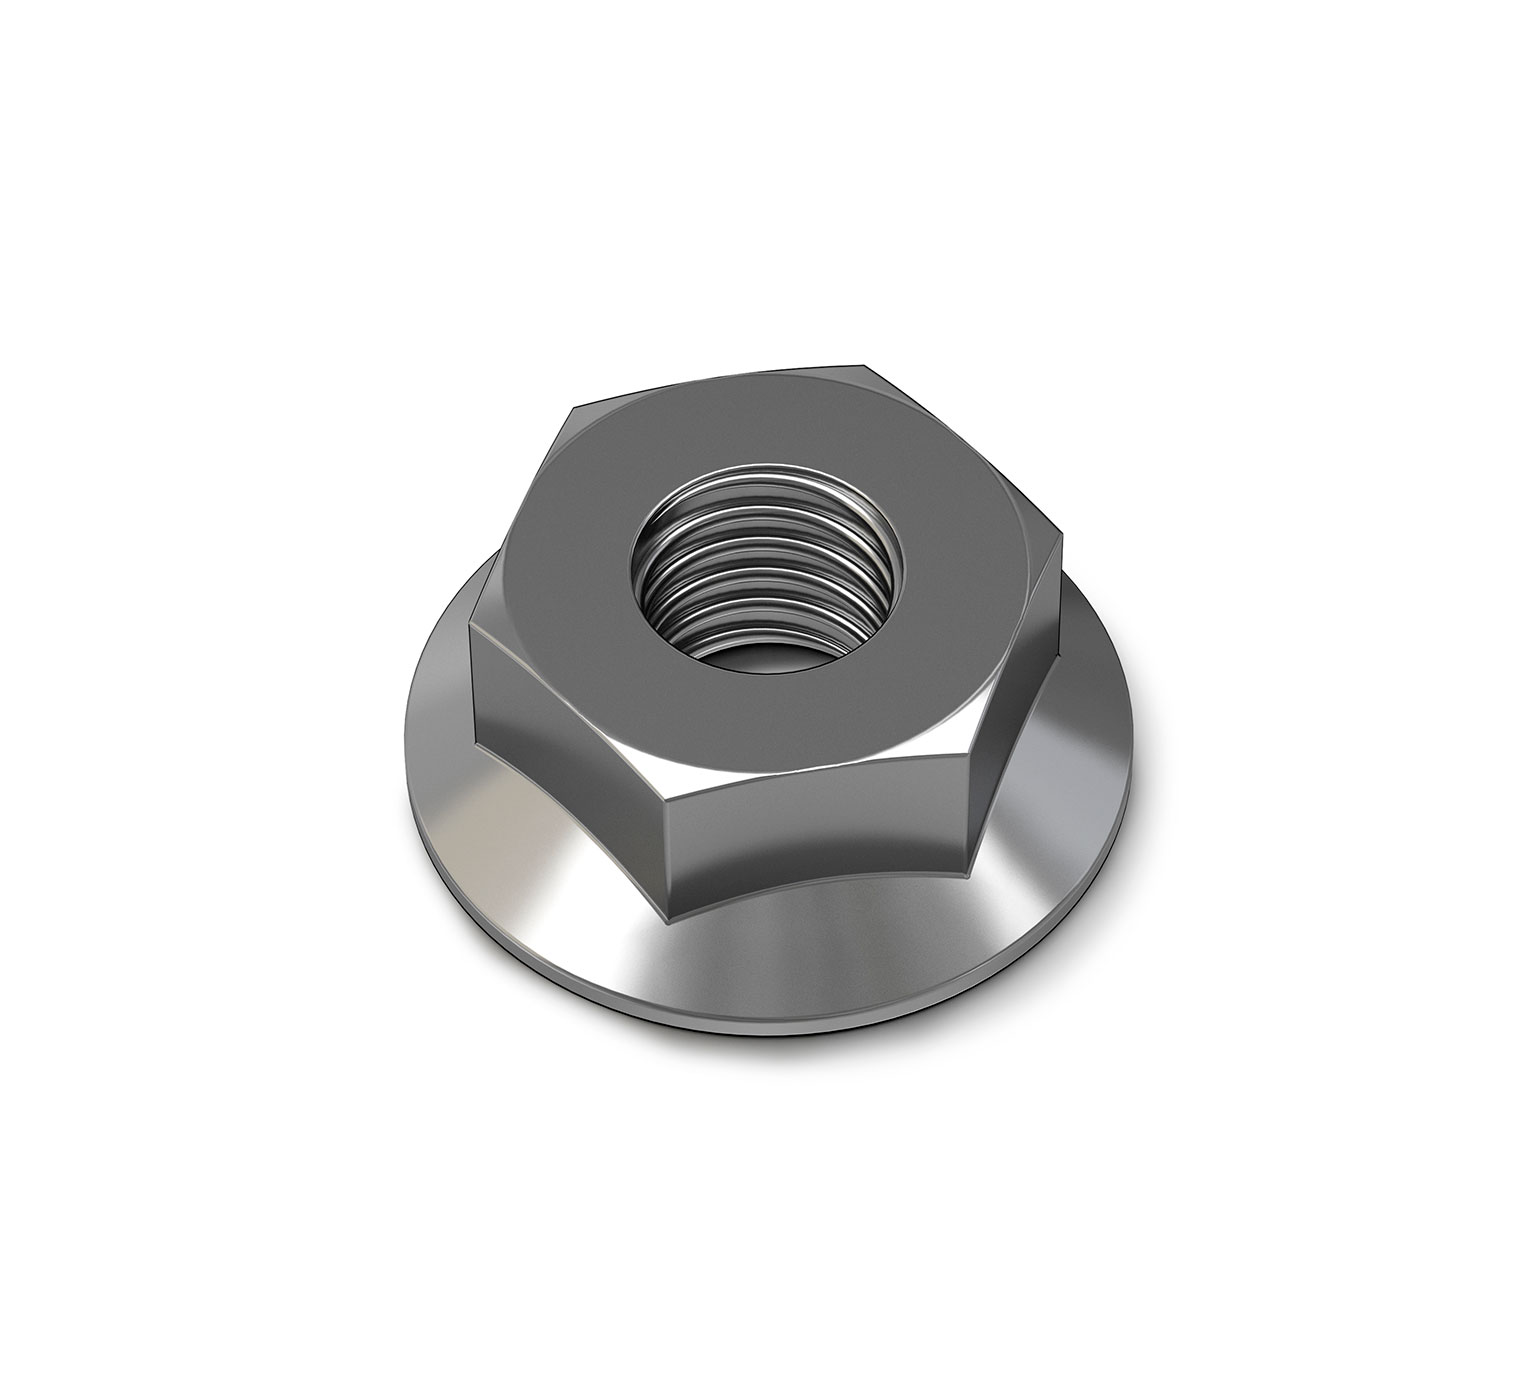 07790 Steel Hex Flange Nut - M6 Thread x 0.2 in alt 1